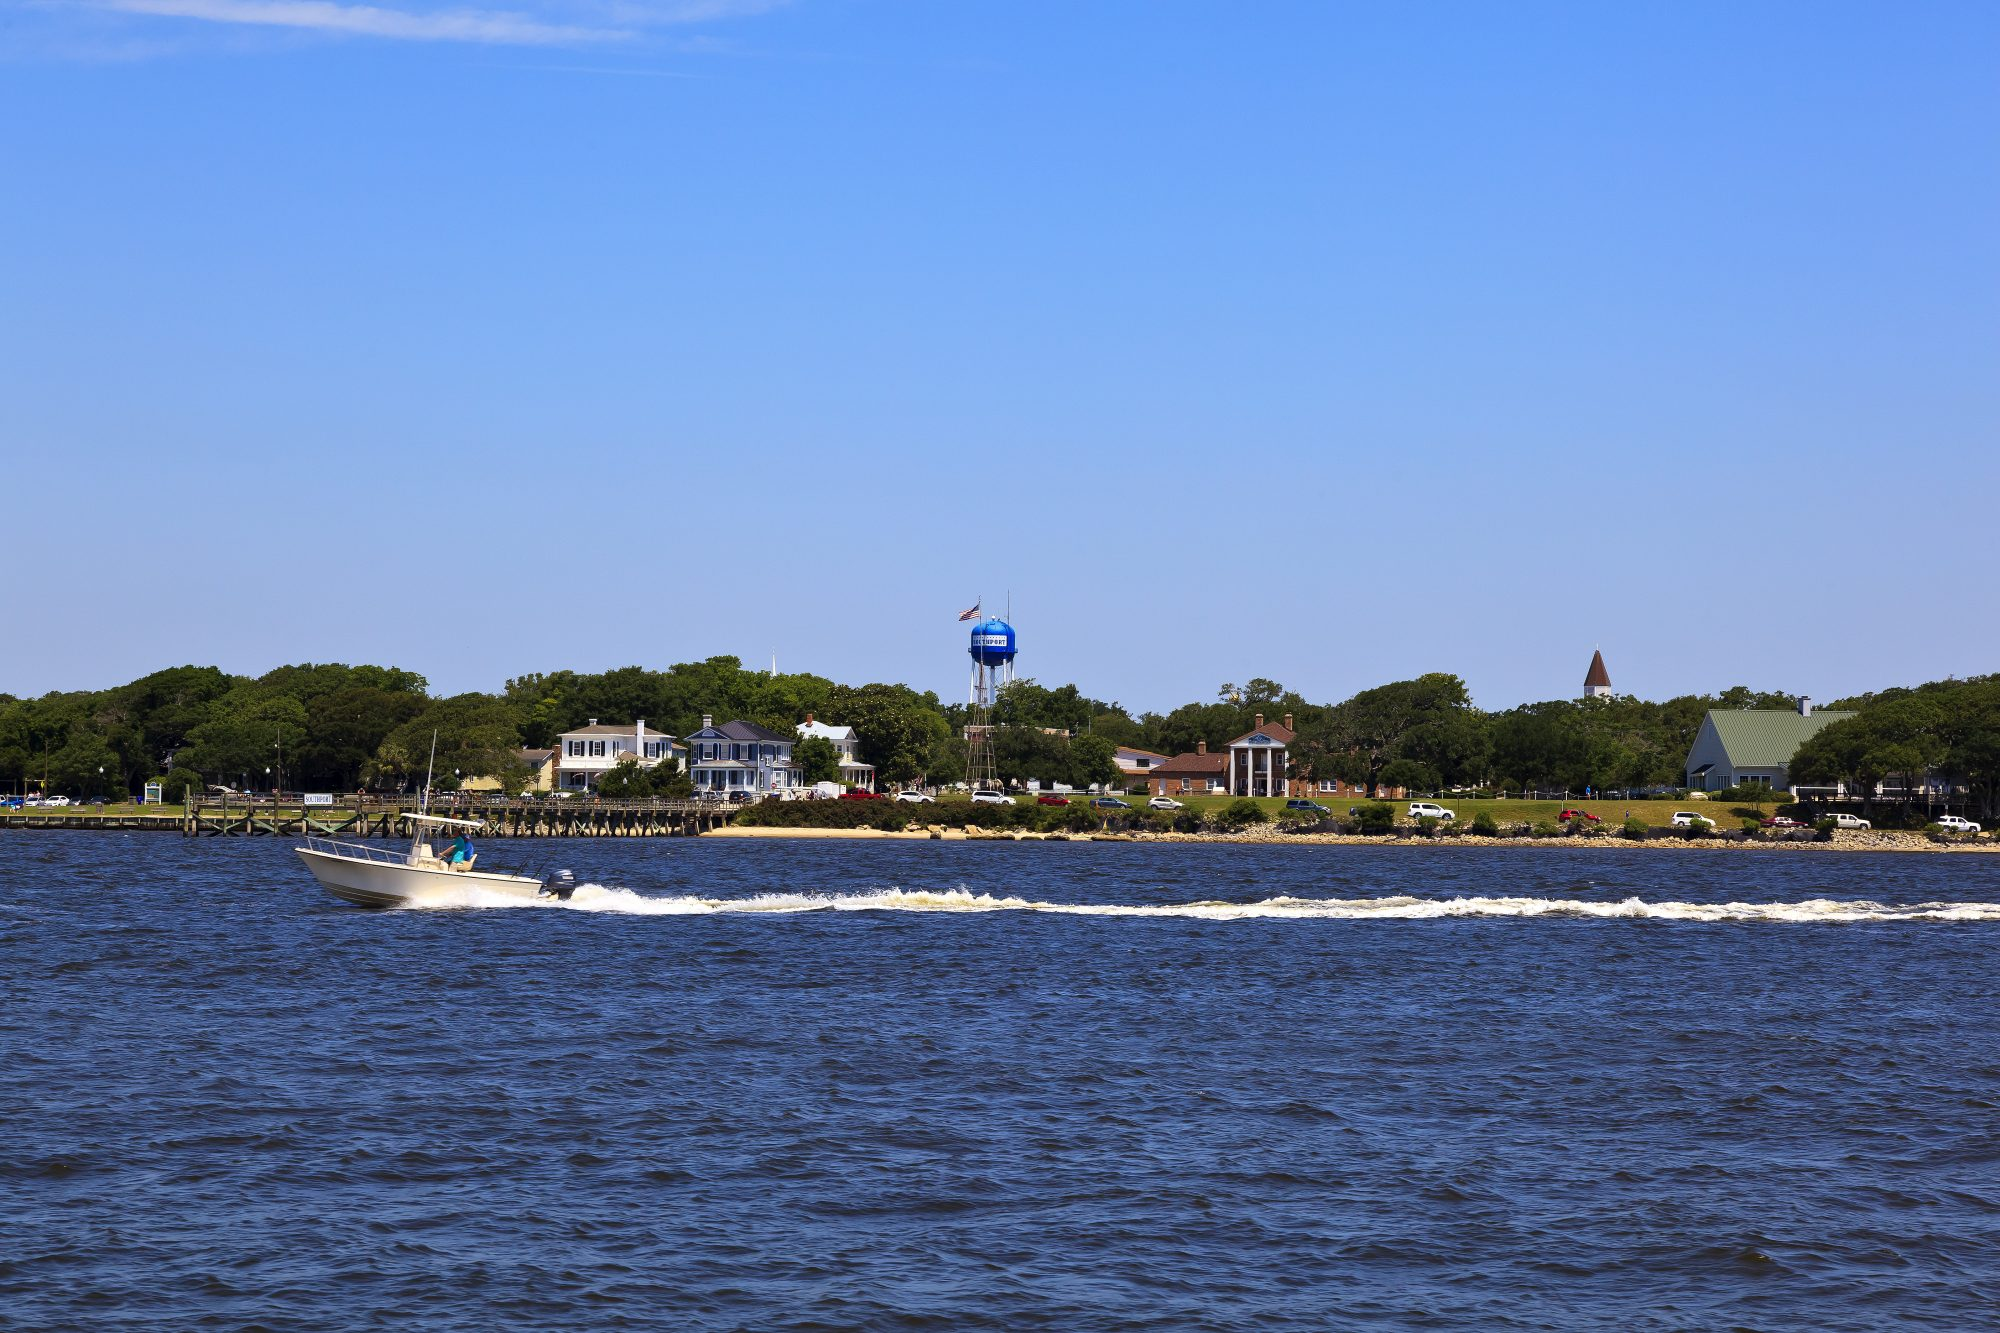 View of the Southport harbor and town from a ferry boat, North Carolina